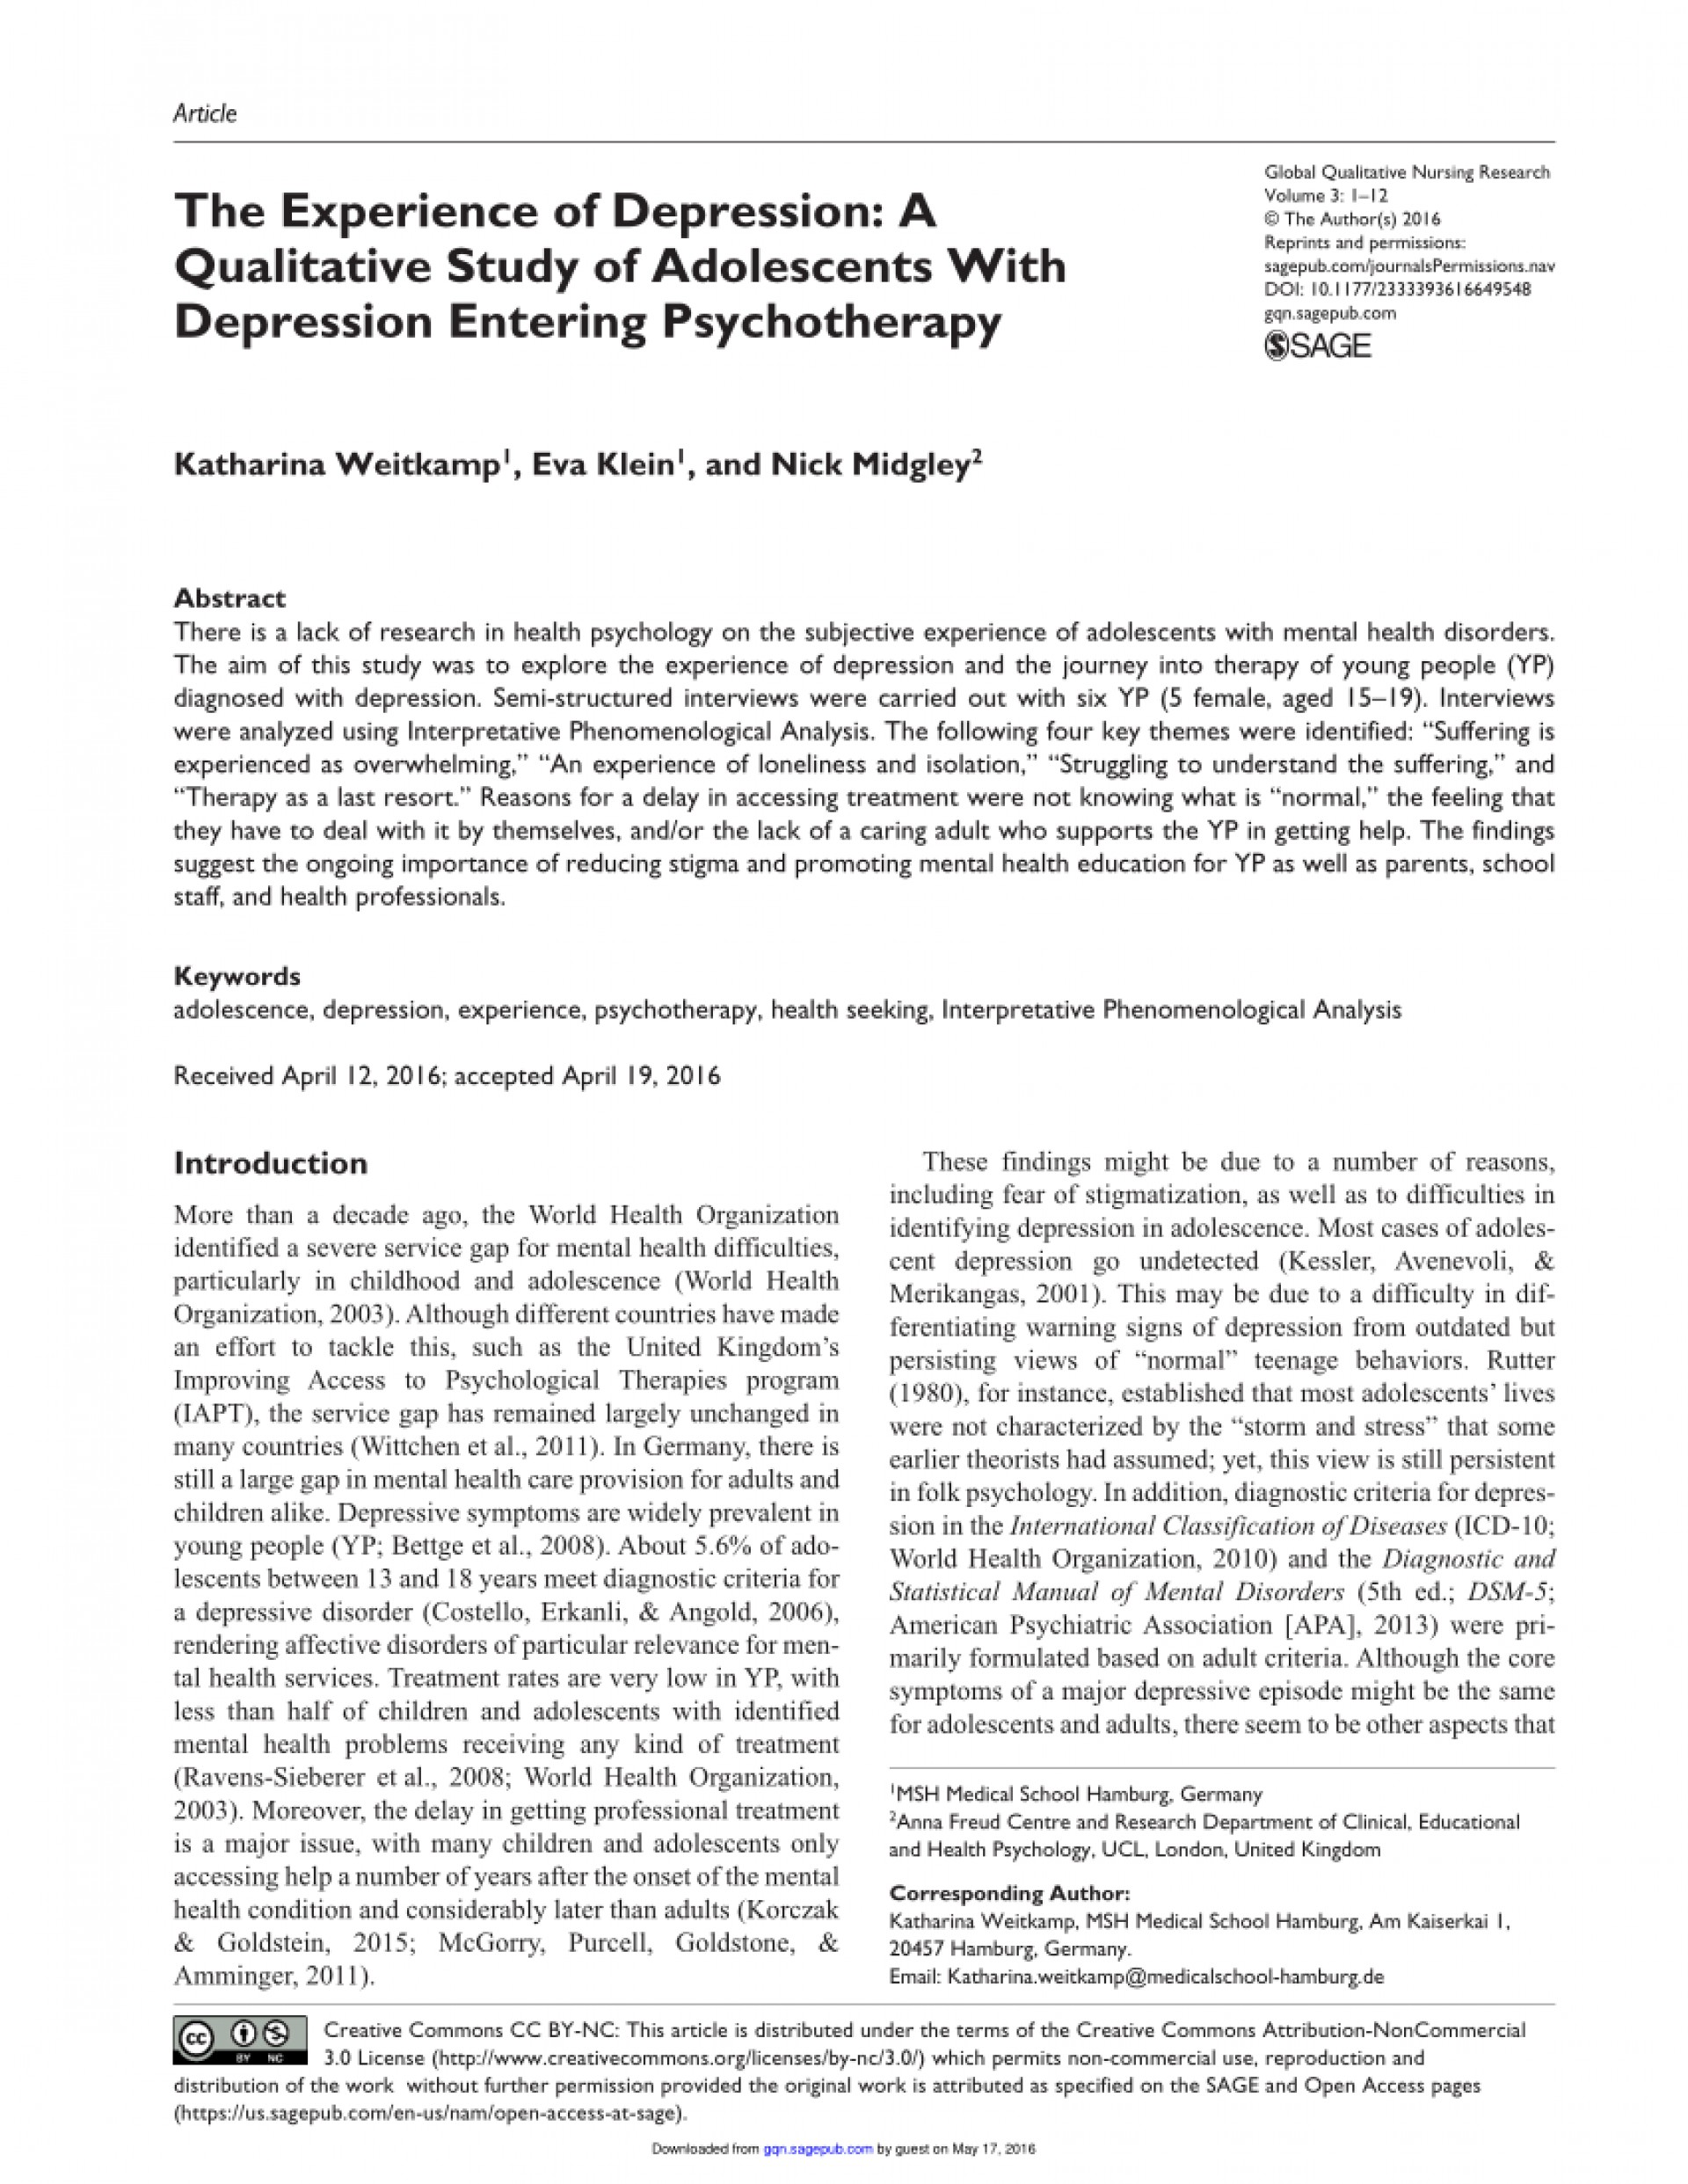 007 Largepreview Introduction To Depression Research Stunning Paper 1920